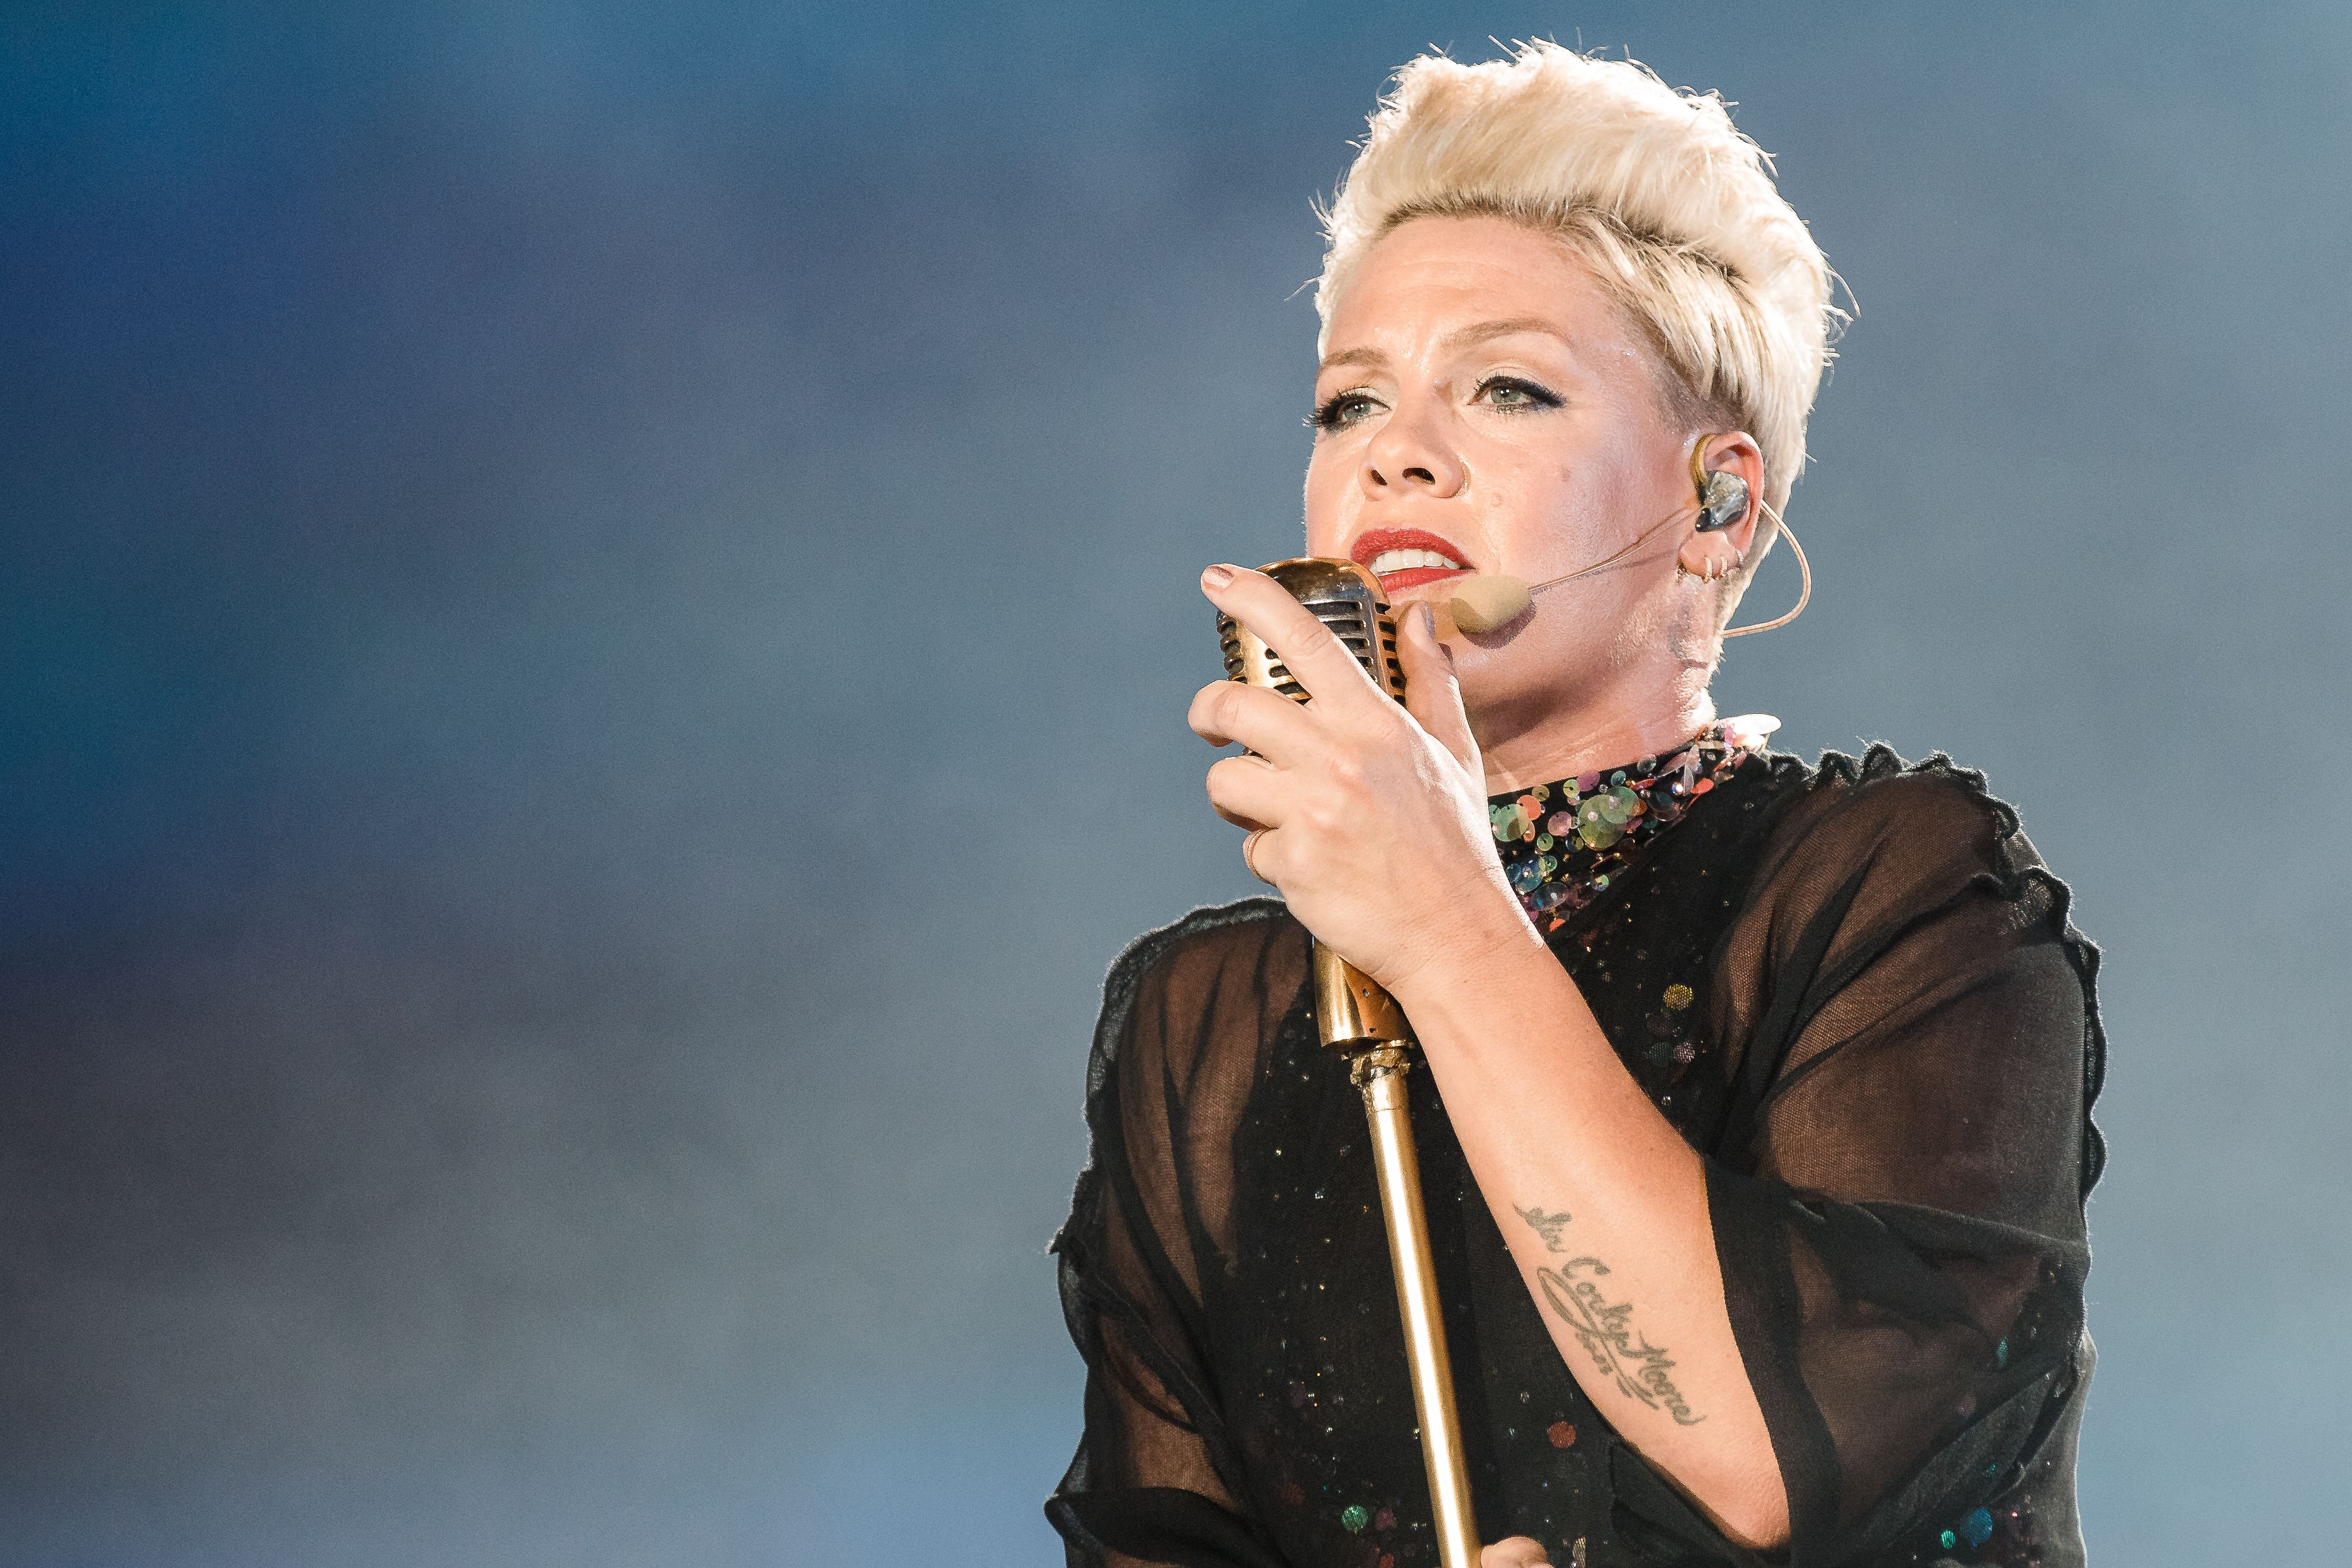 P!nk performs live on stage at day 6 of Rock In Rio Music Festival at Cidade do Rock on October 5, 2019 | Photo: Getty Images